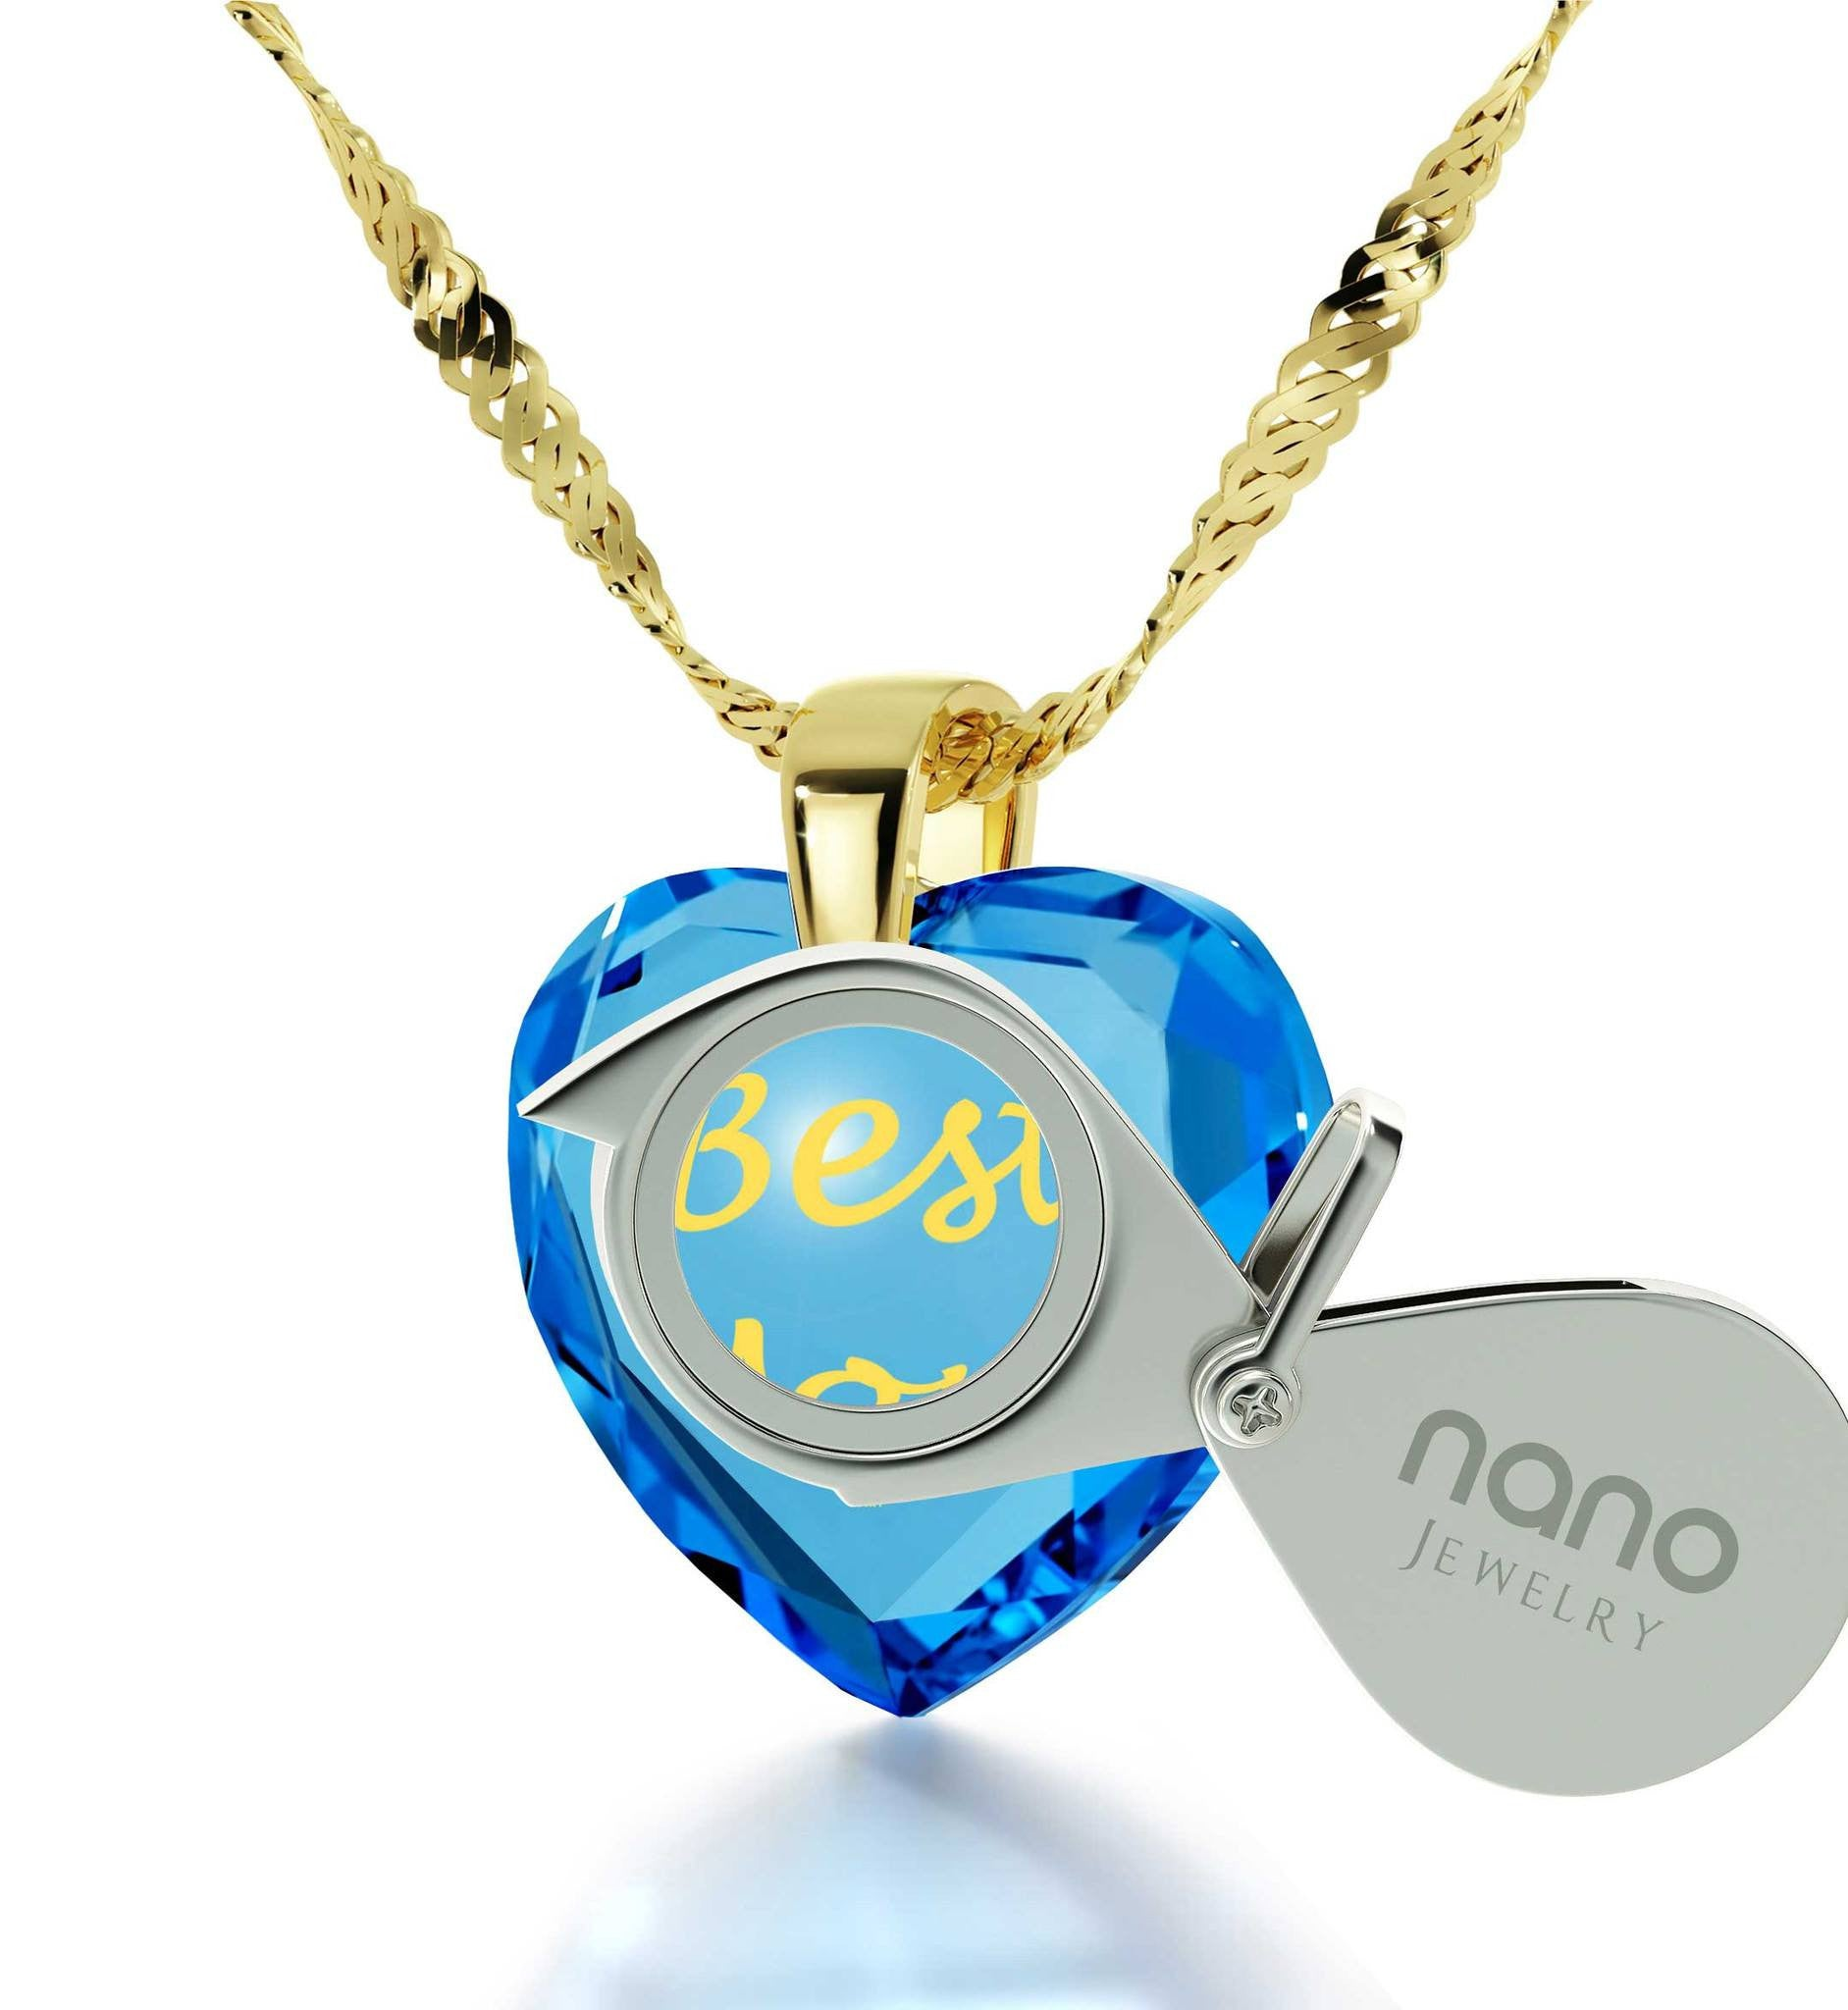 Top Gifts for Mom, 14k Gold Engraved Necklaces, Best Gift for Mother's Day, by Nano Jewelry